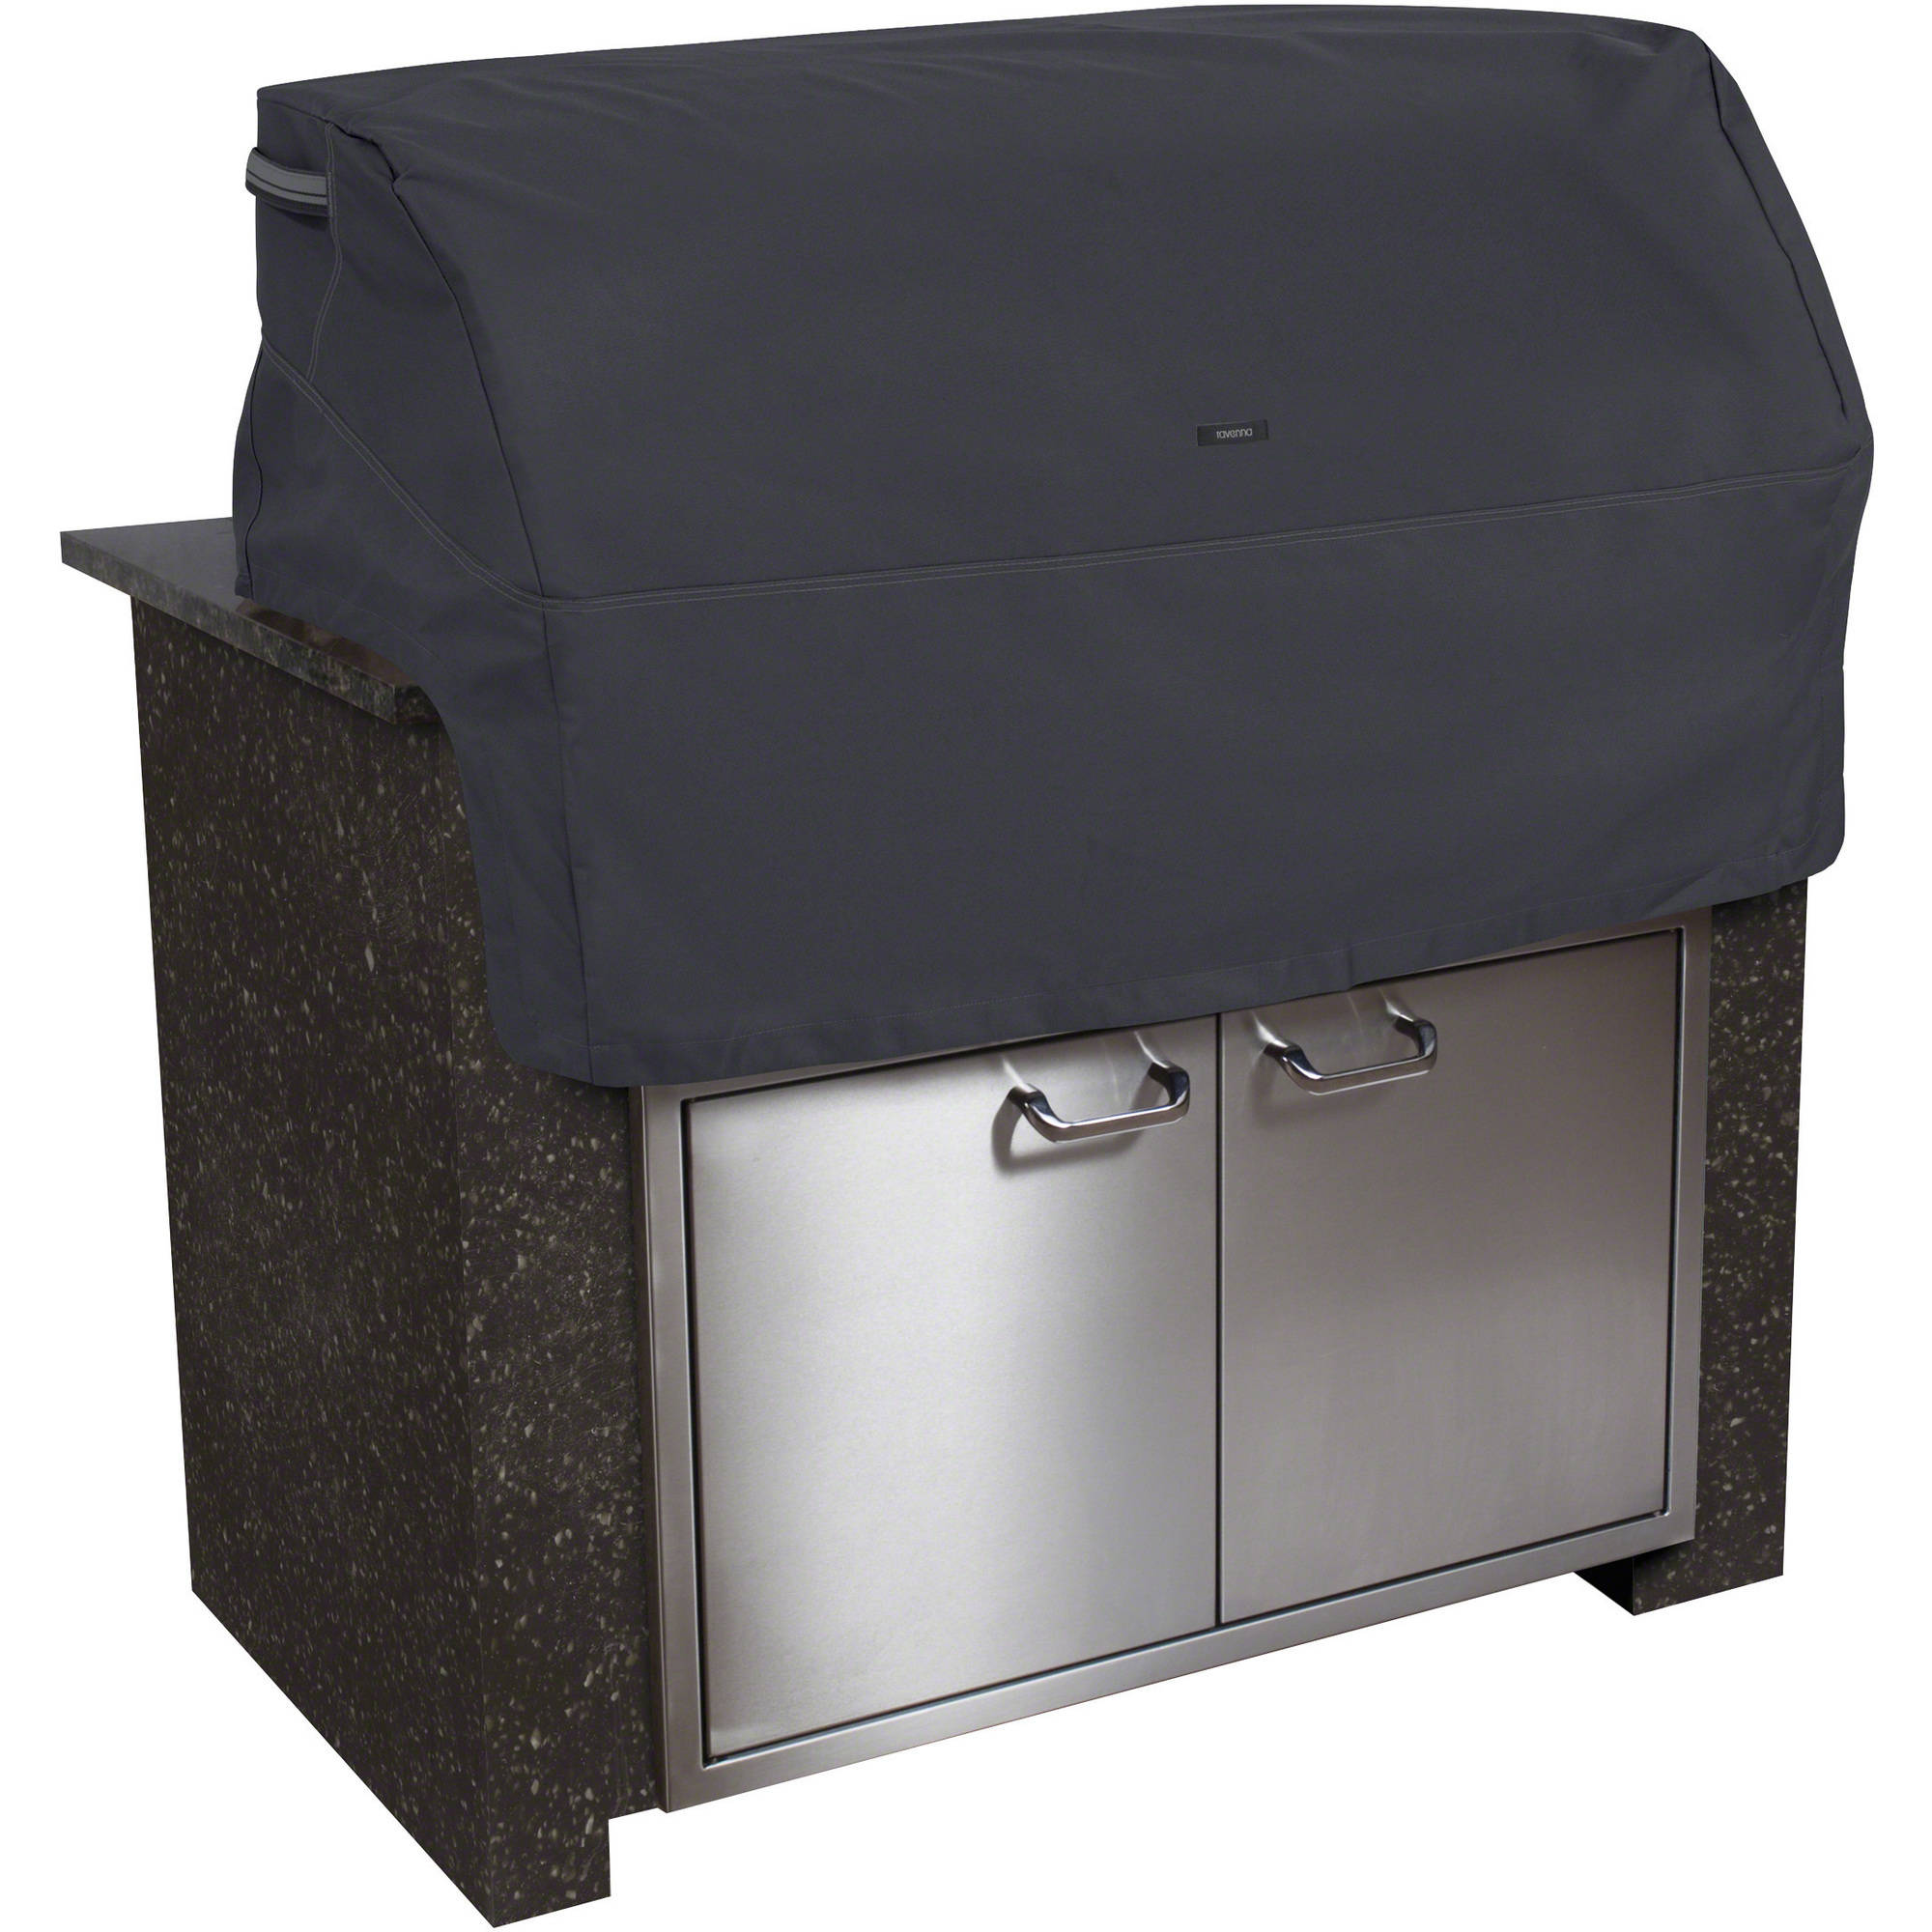 Classic Accessories Ravenna Built-in BBQ Grill Top Cover, Black